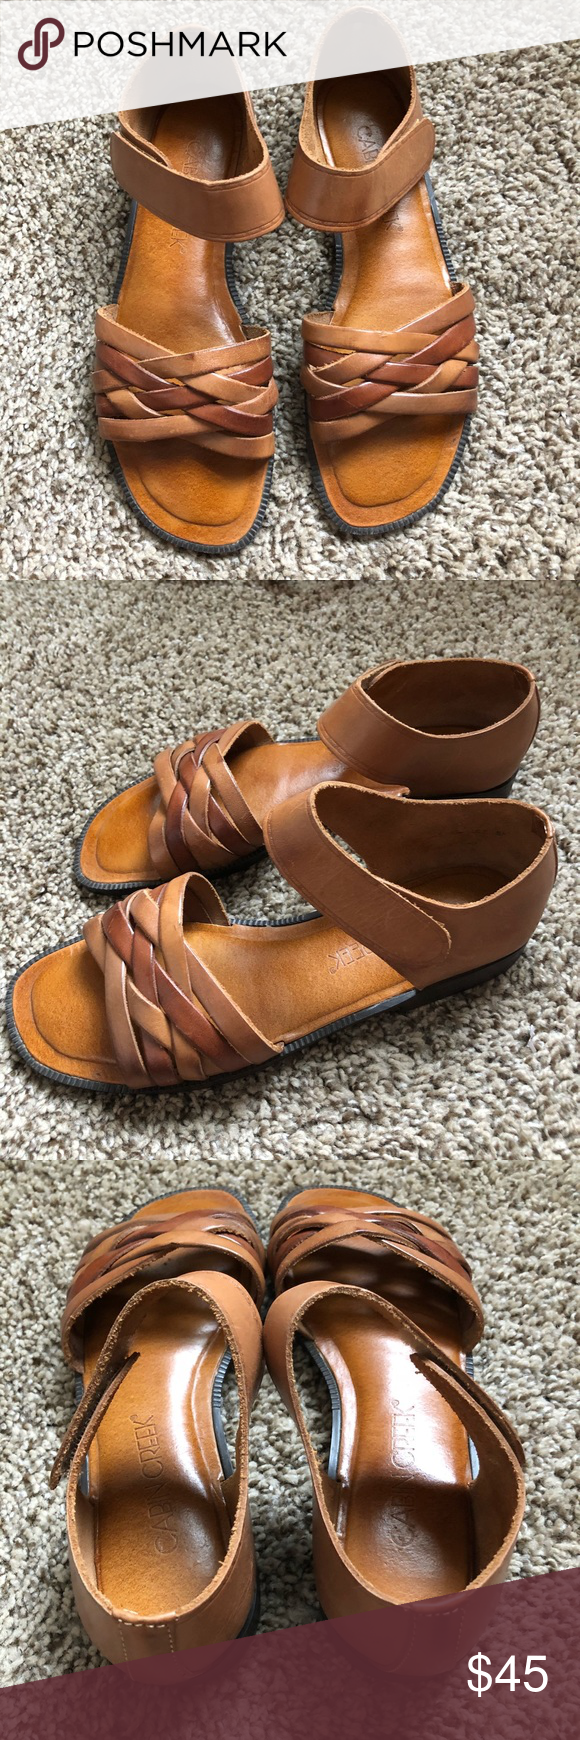 880c557c74ae Cabin Creek Sandals Made of leather. Size 8.5 made in Brazil brand new! Cabin  Creek Shoes Flats   Loafers